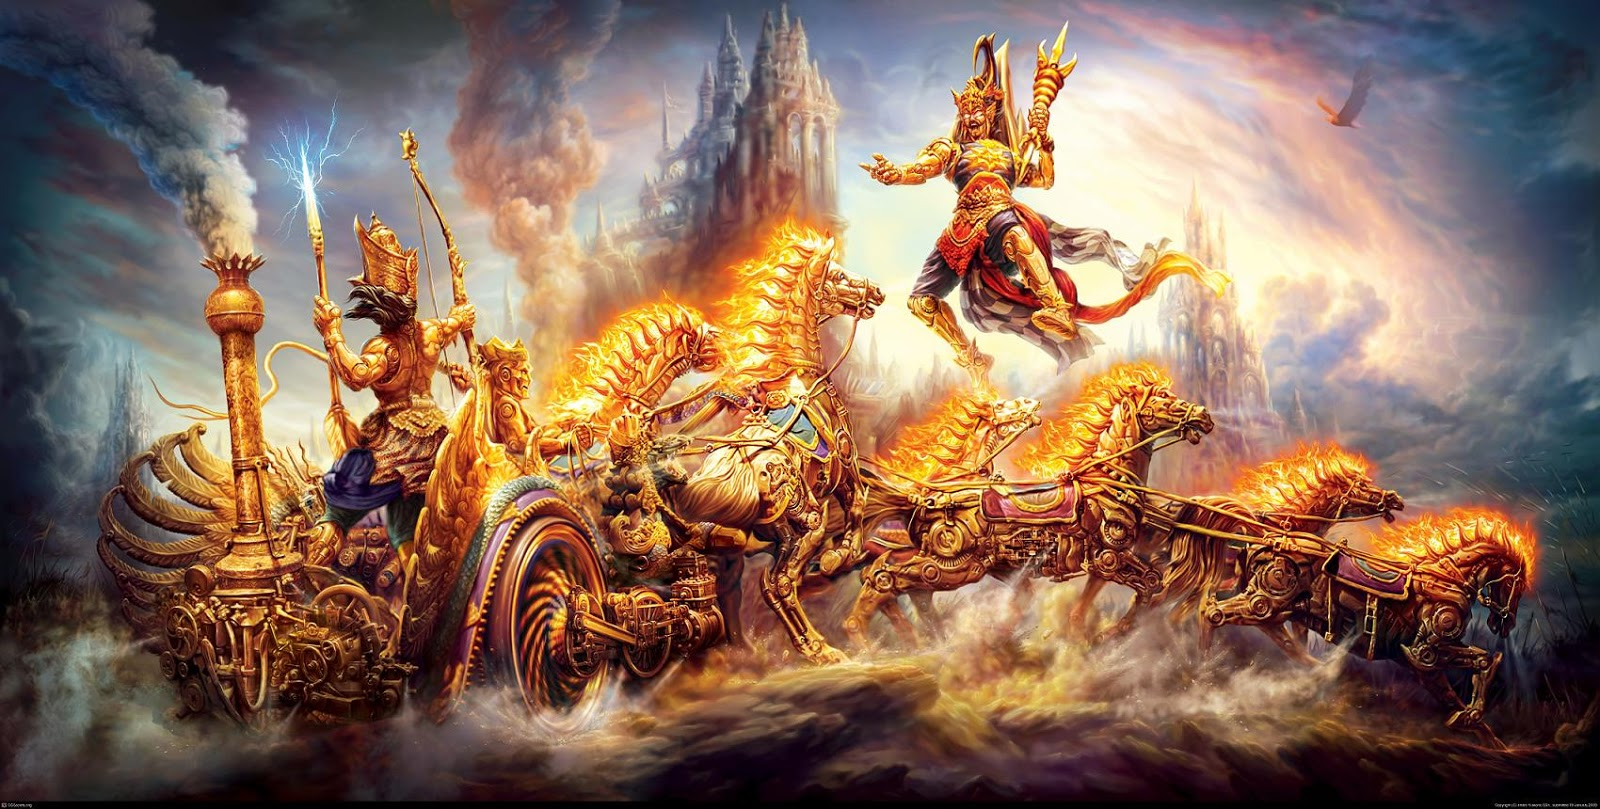 war of mahabharata karana and arjuna